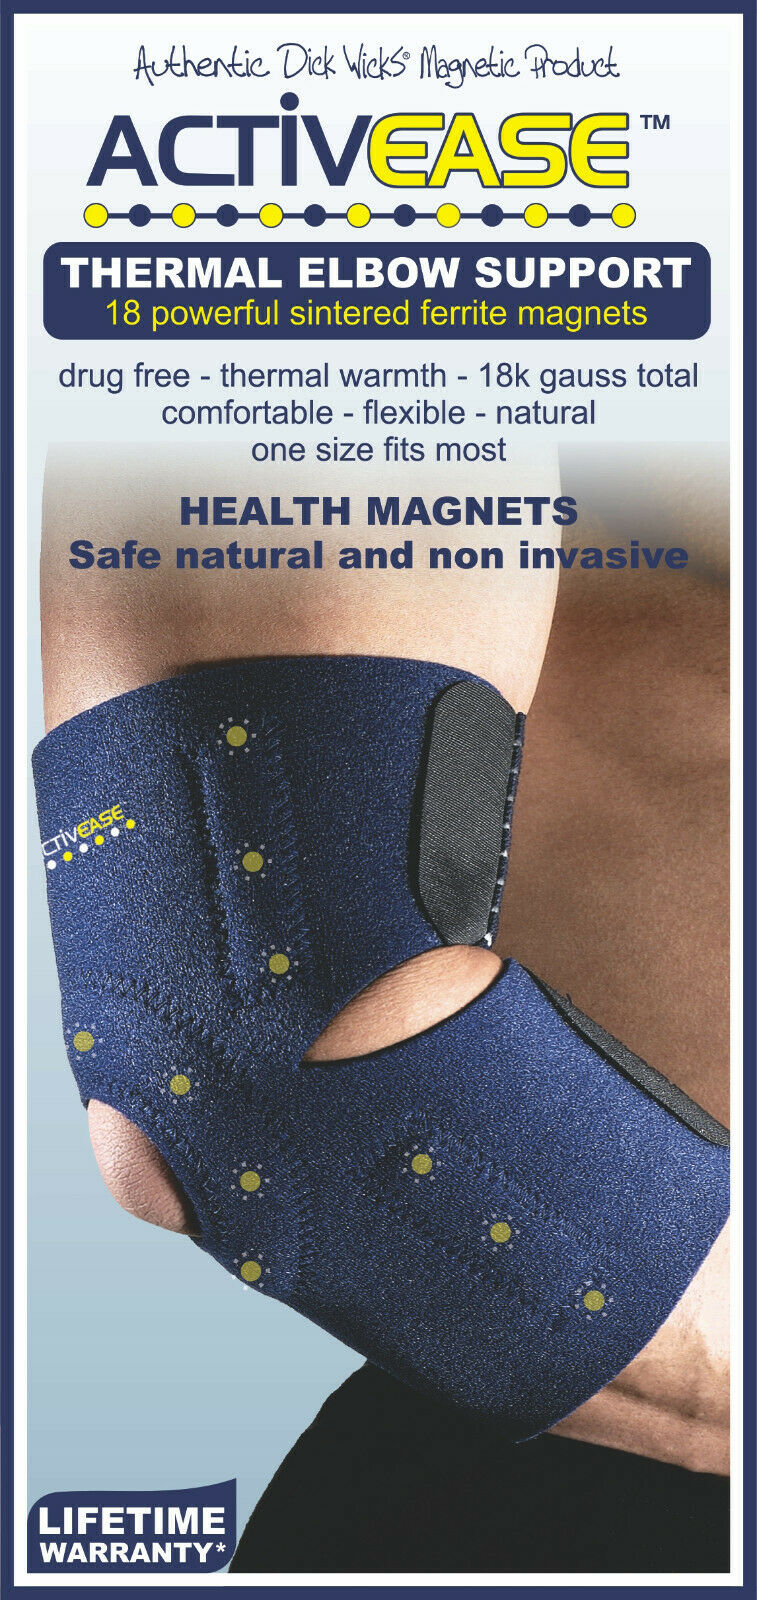 Dick Wicks Activease Thermal Elbow Support Magnetic Therapy Pain Relief